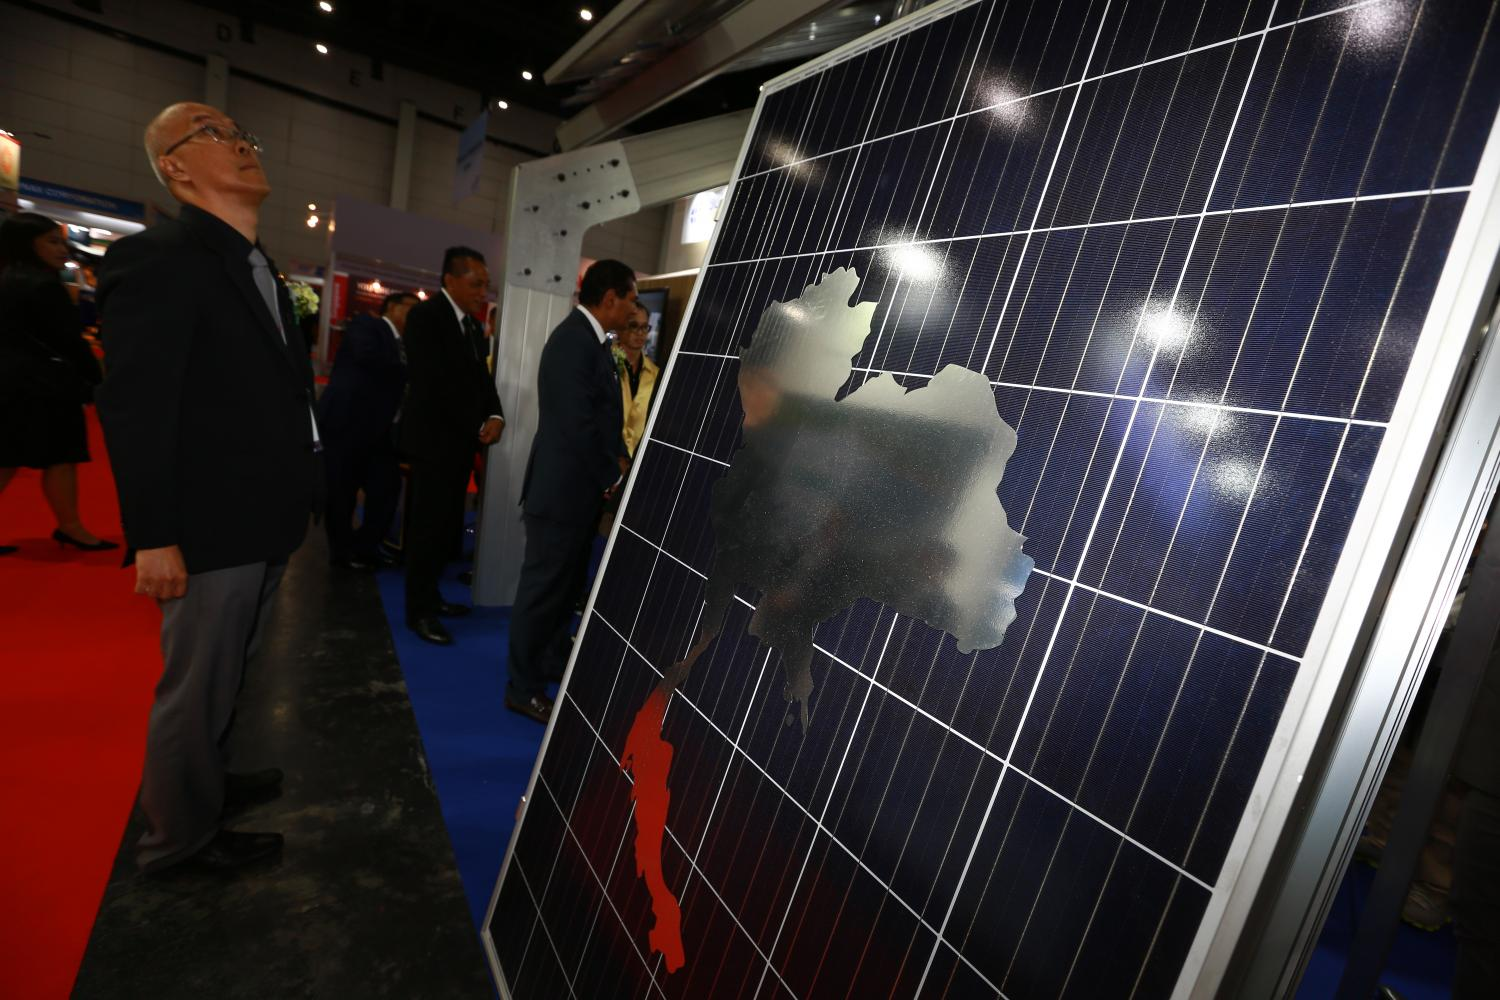 Solar panels from companies worldwide are showcased at Asean Sustainable Energy Week 2019 at Bitec, Bangkok until Saturday. (Photo by Somchai Poomlard)